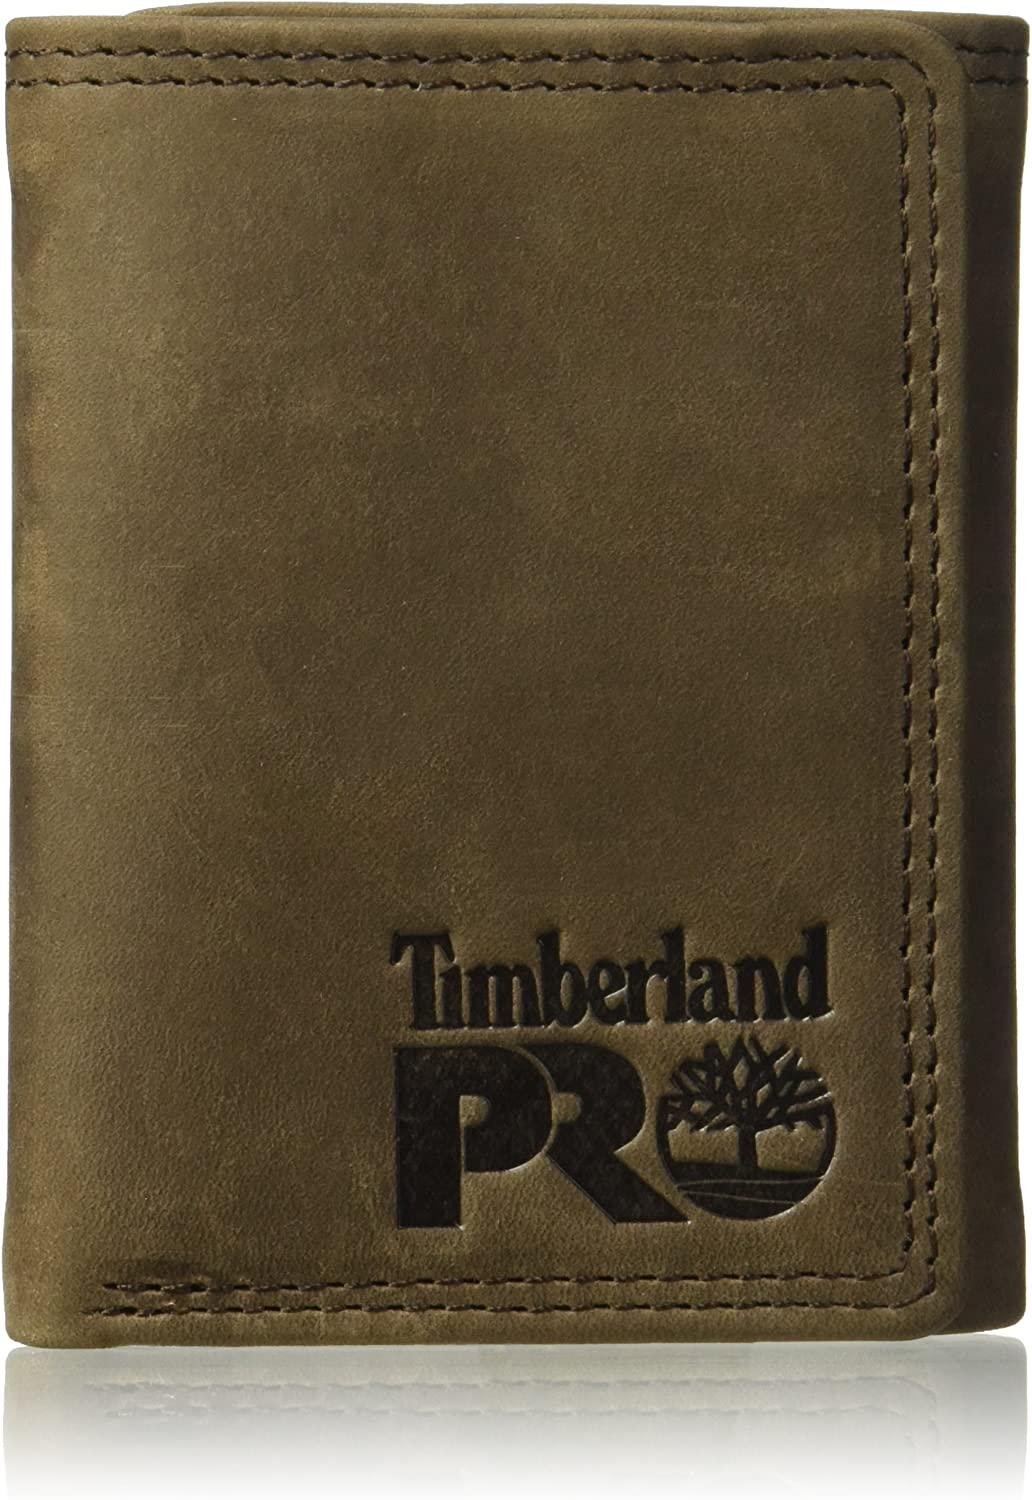 Timberland PRO Herren Leather RFID Trifold Wallet With ID